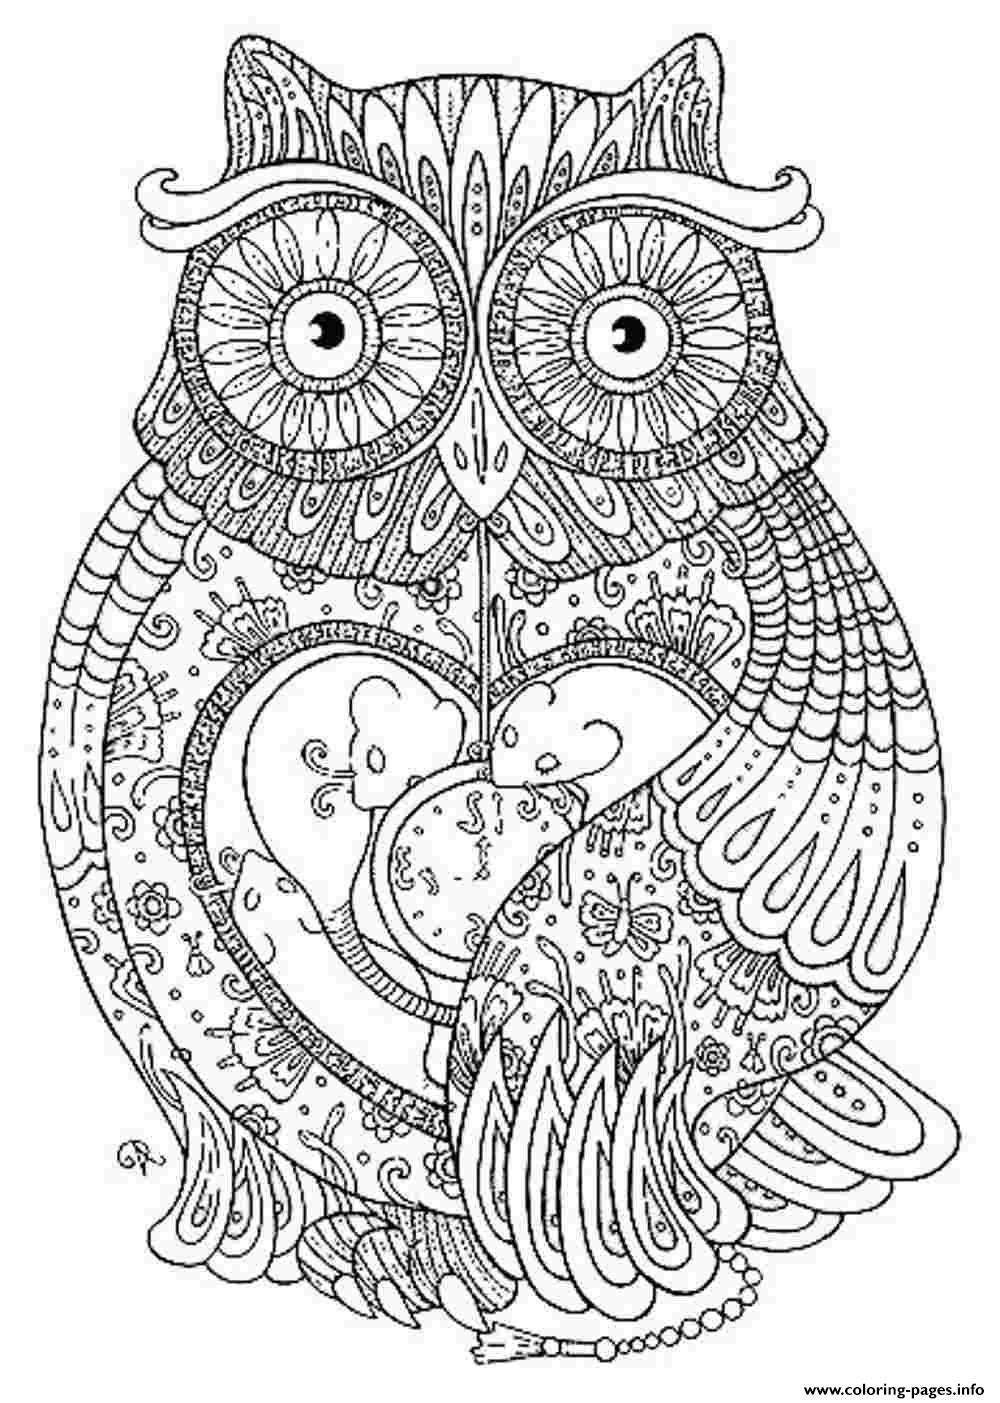 Pages to color for adults - Animal For Adults Coloring Pages For Kids And For Adults